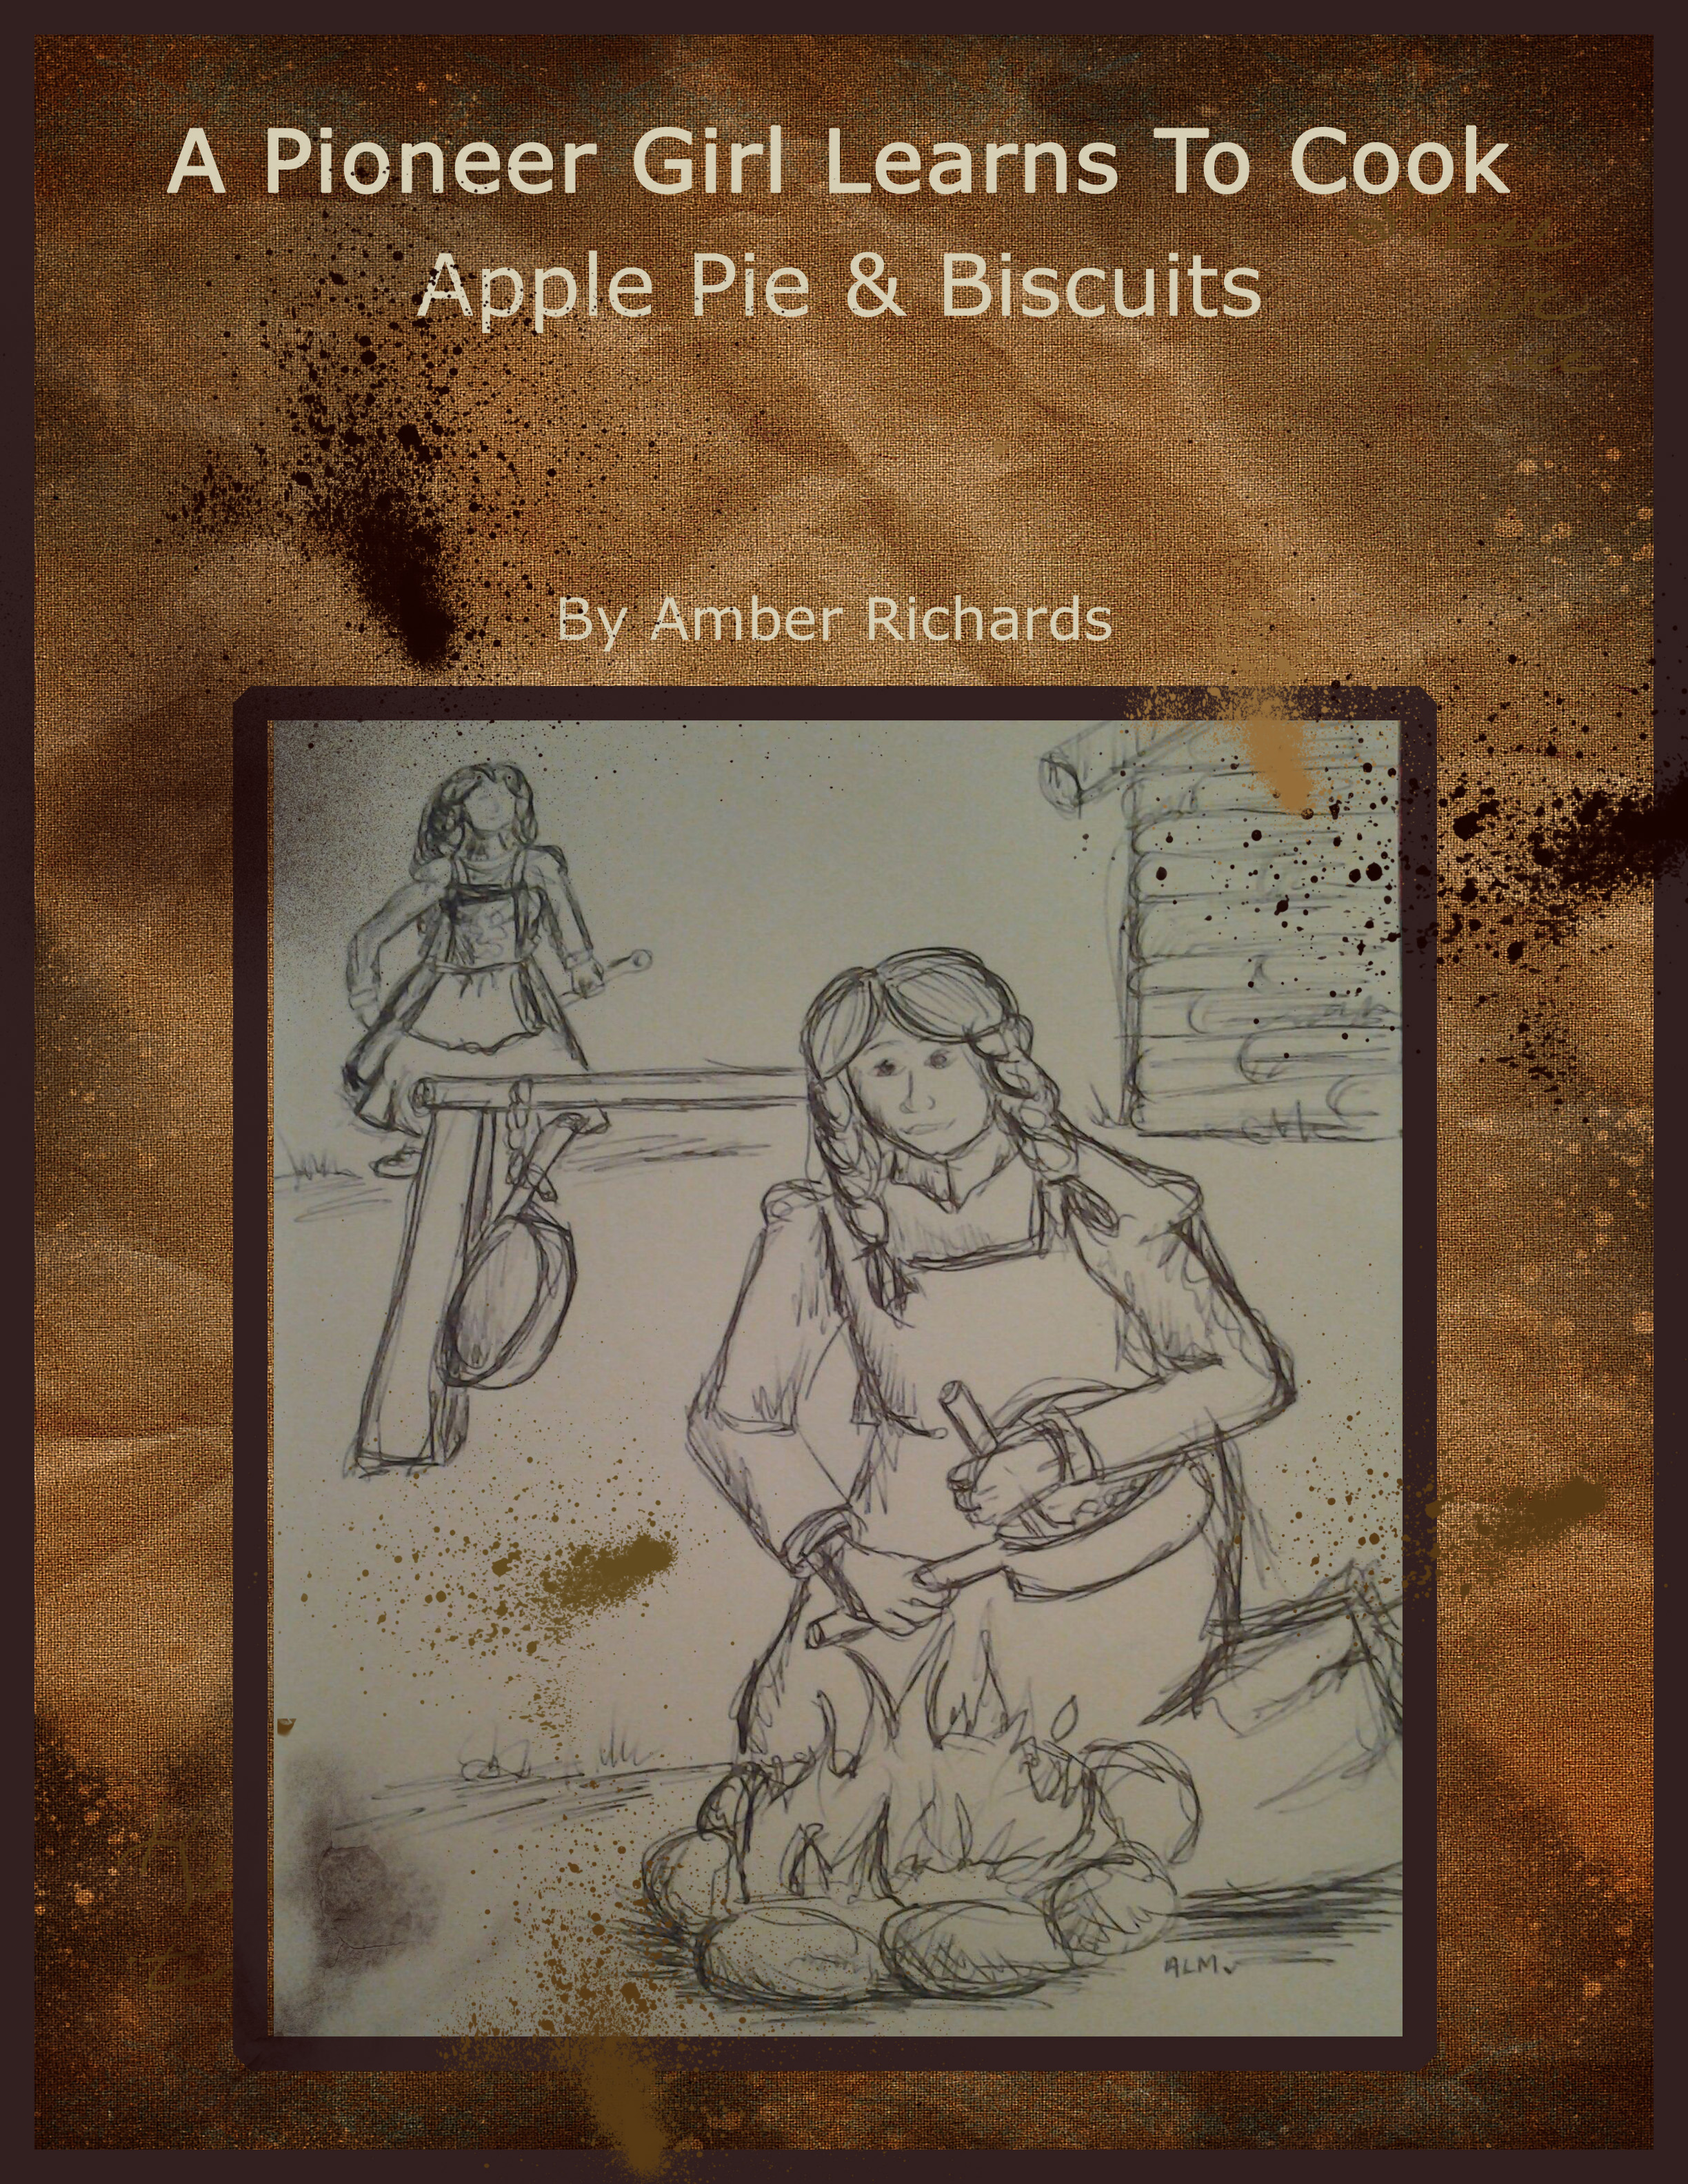 A pioneer girl learns to cook: apple pie & biscuits